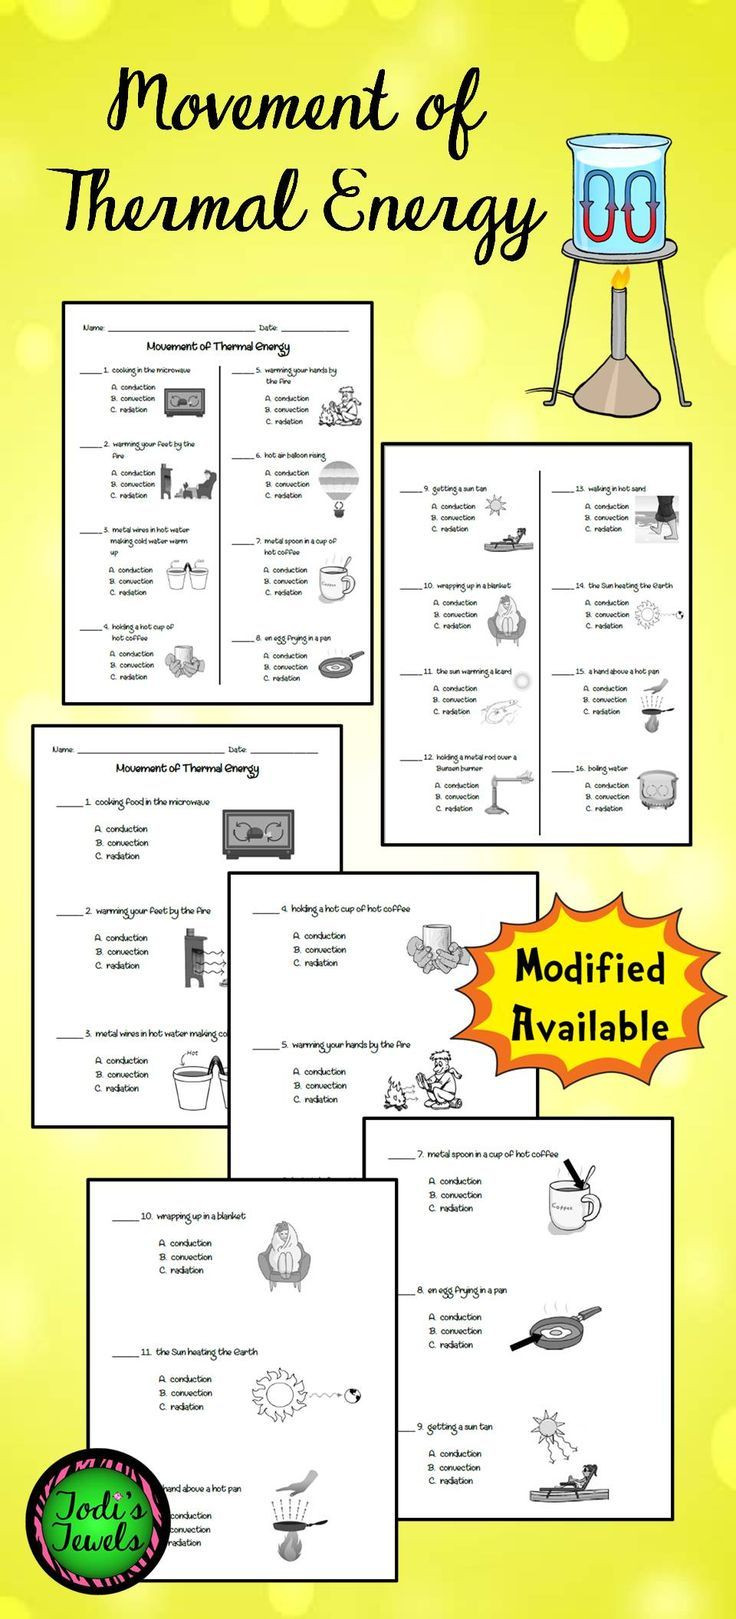 Heat Transfer Worksheet Middle School Movement Of thermal Energy Ws